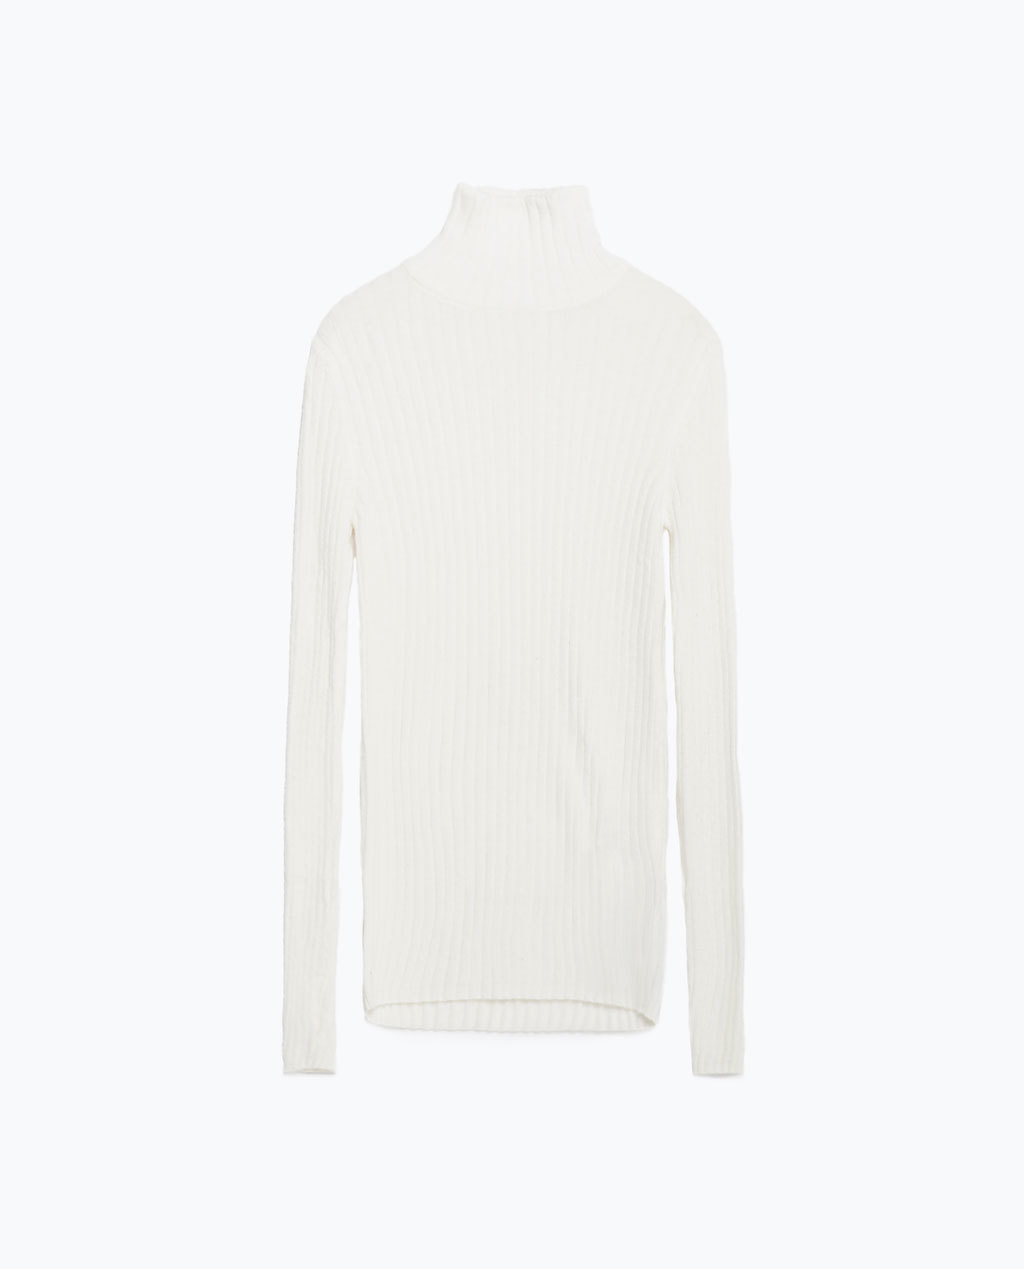 Ribbed Sweater - pattern: plain; neckline: high neck; length: below the bottom; style: standard; predominant colour: white; occasions: casual; fibres: polyester/polyamide - 100%; fit: standard fit; sleeve length: long sleeve; sleeve style: standard; texture group: knits/crochet; pattern type: knitted - fine stitch; season: a/w 2015; wardrobe: basic